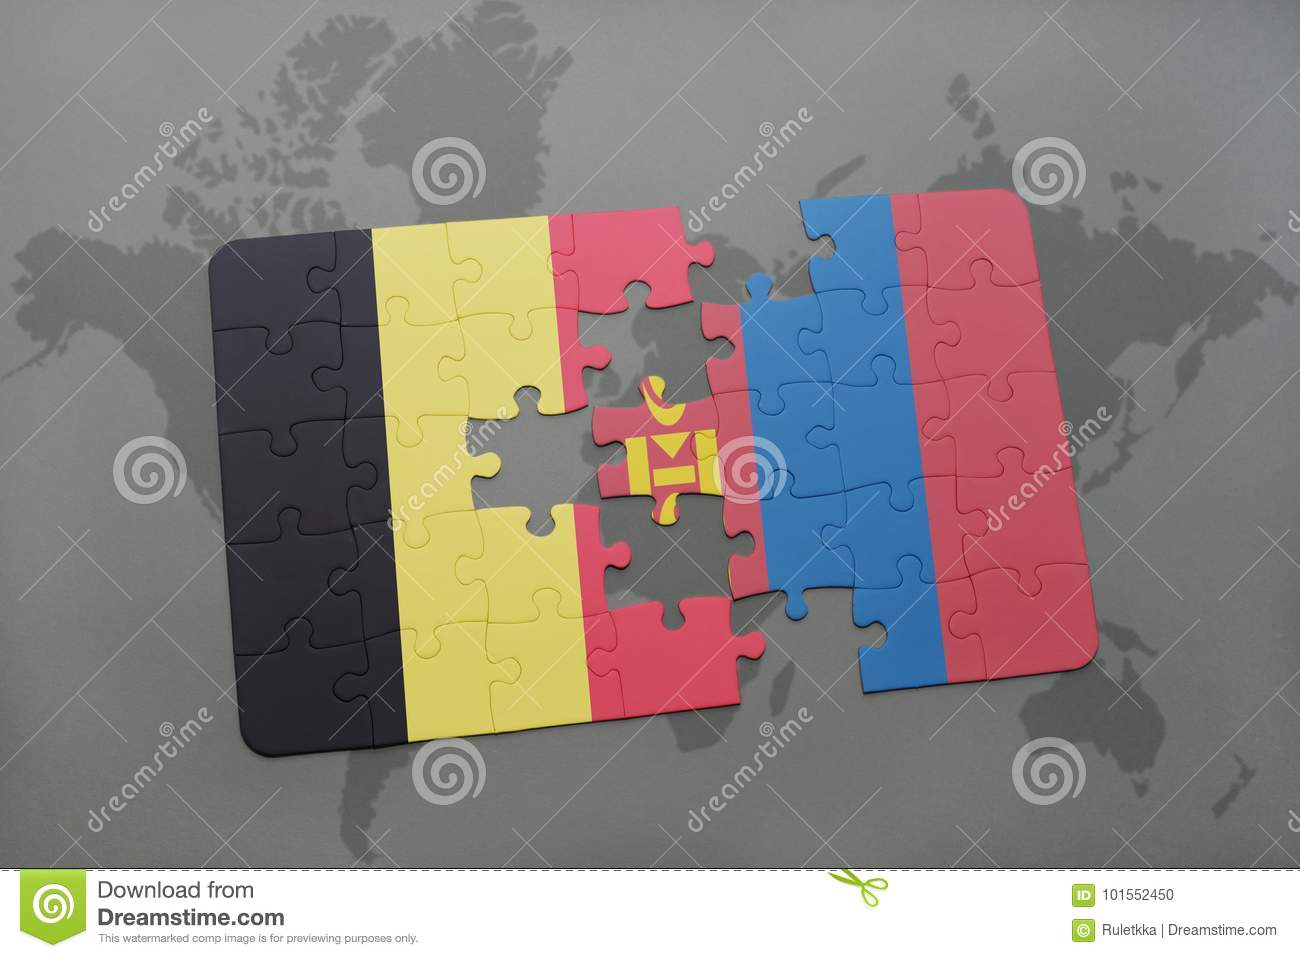 Puzzle with the national flag of belgium and mongolia on a world map puzzle with the national flag of belgium and mongolia on a world map background stock photo image of gray flag 101552450 gumiabroncs Choice Image